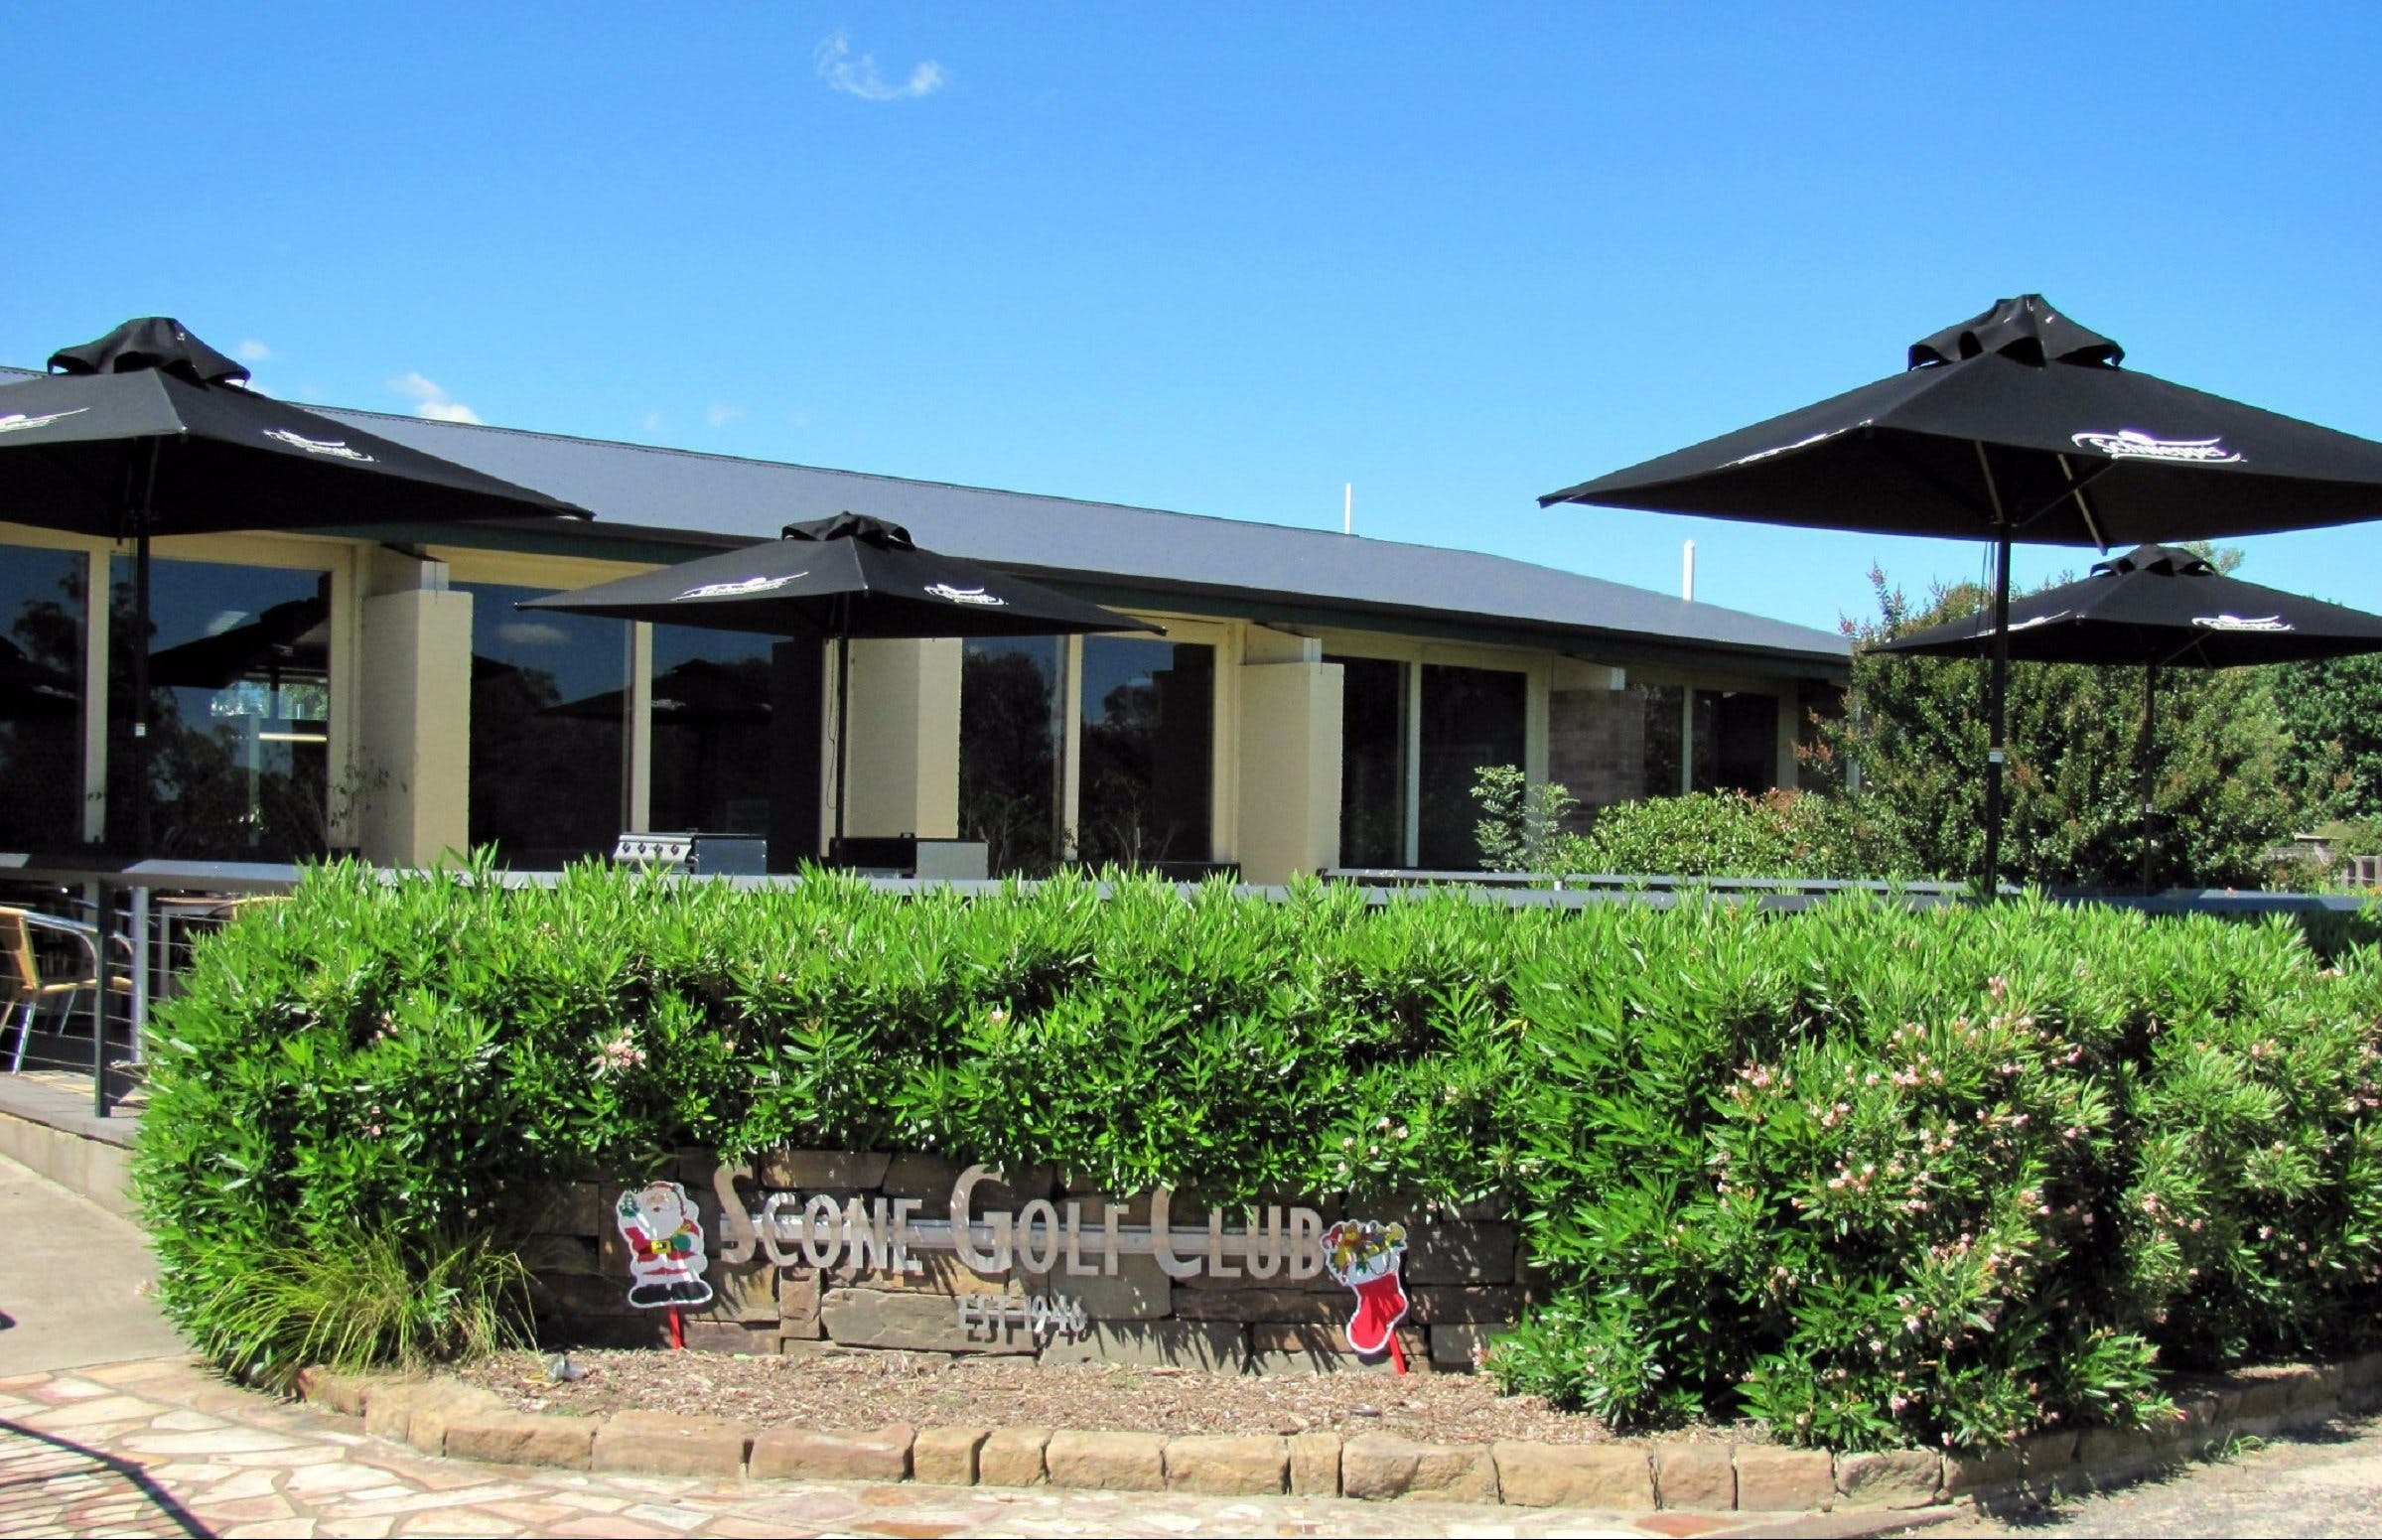 Scone Golf Club - Accommodation Gold Coast